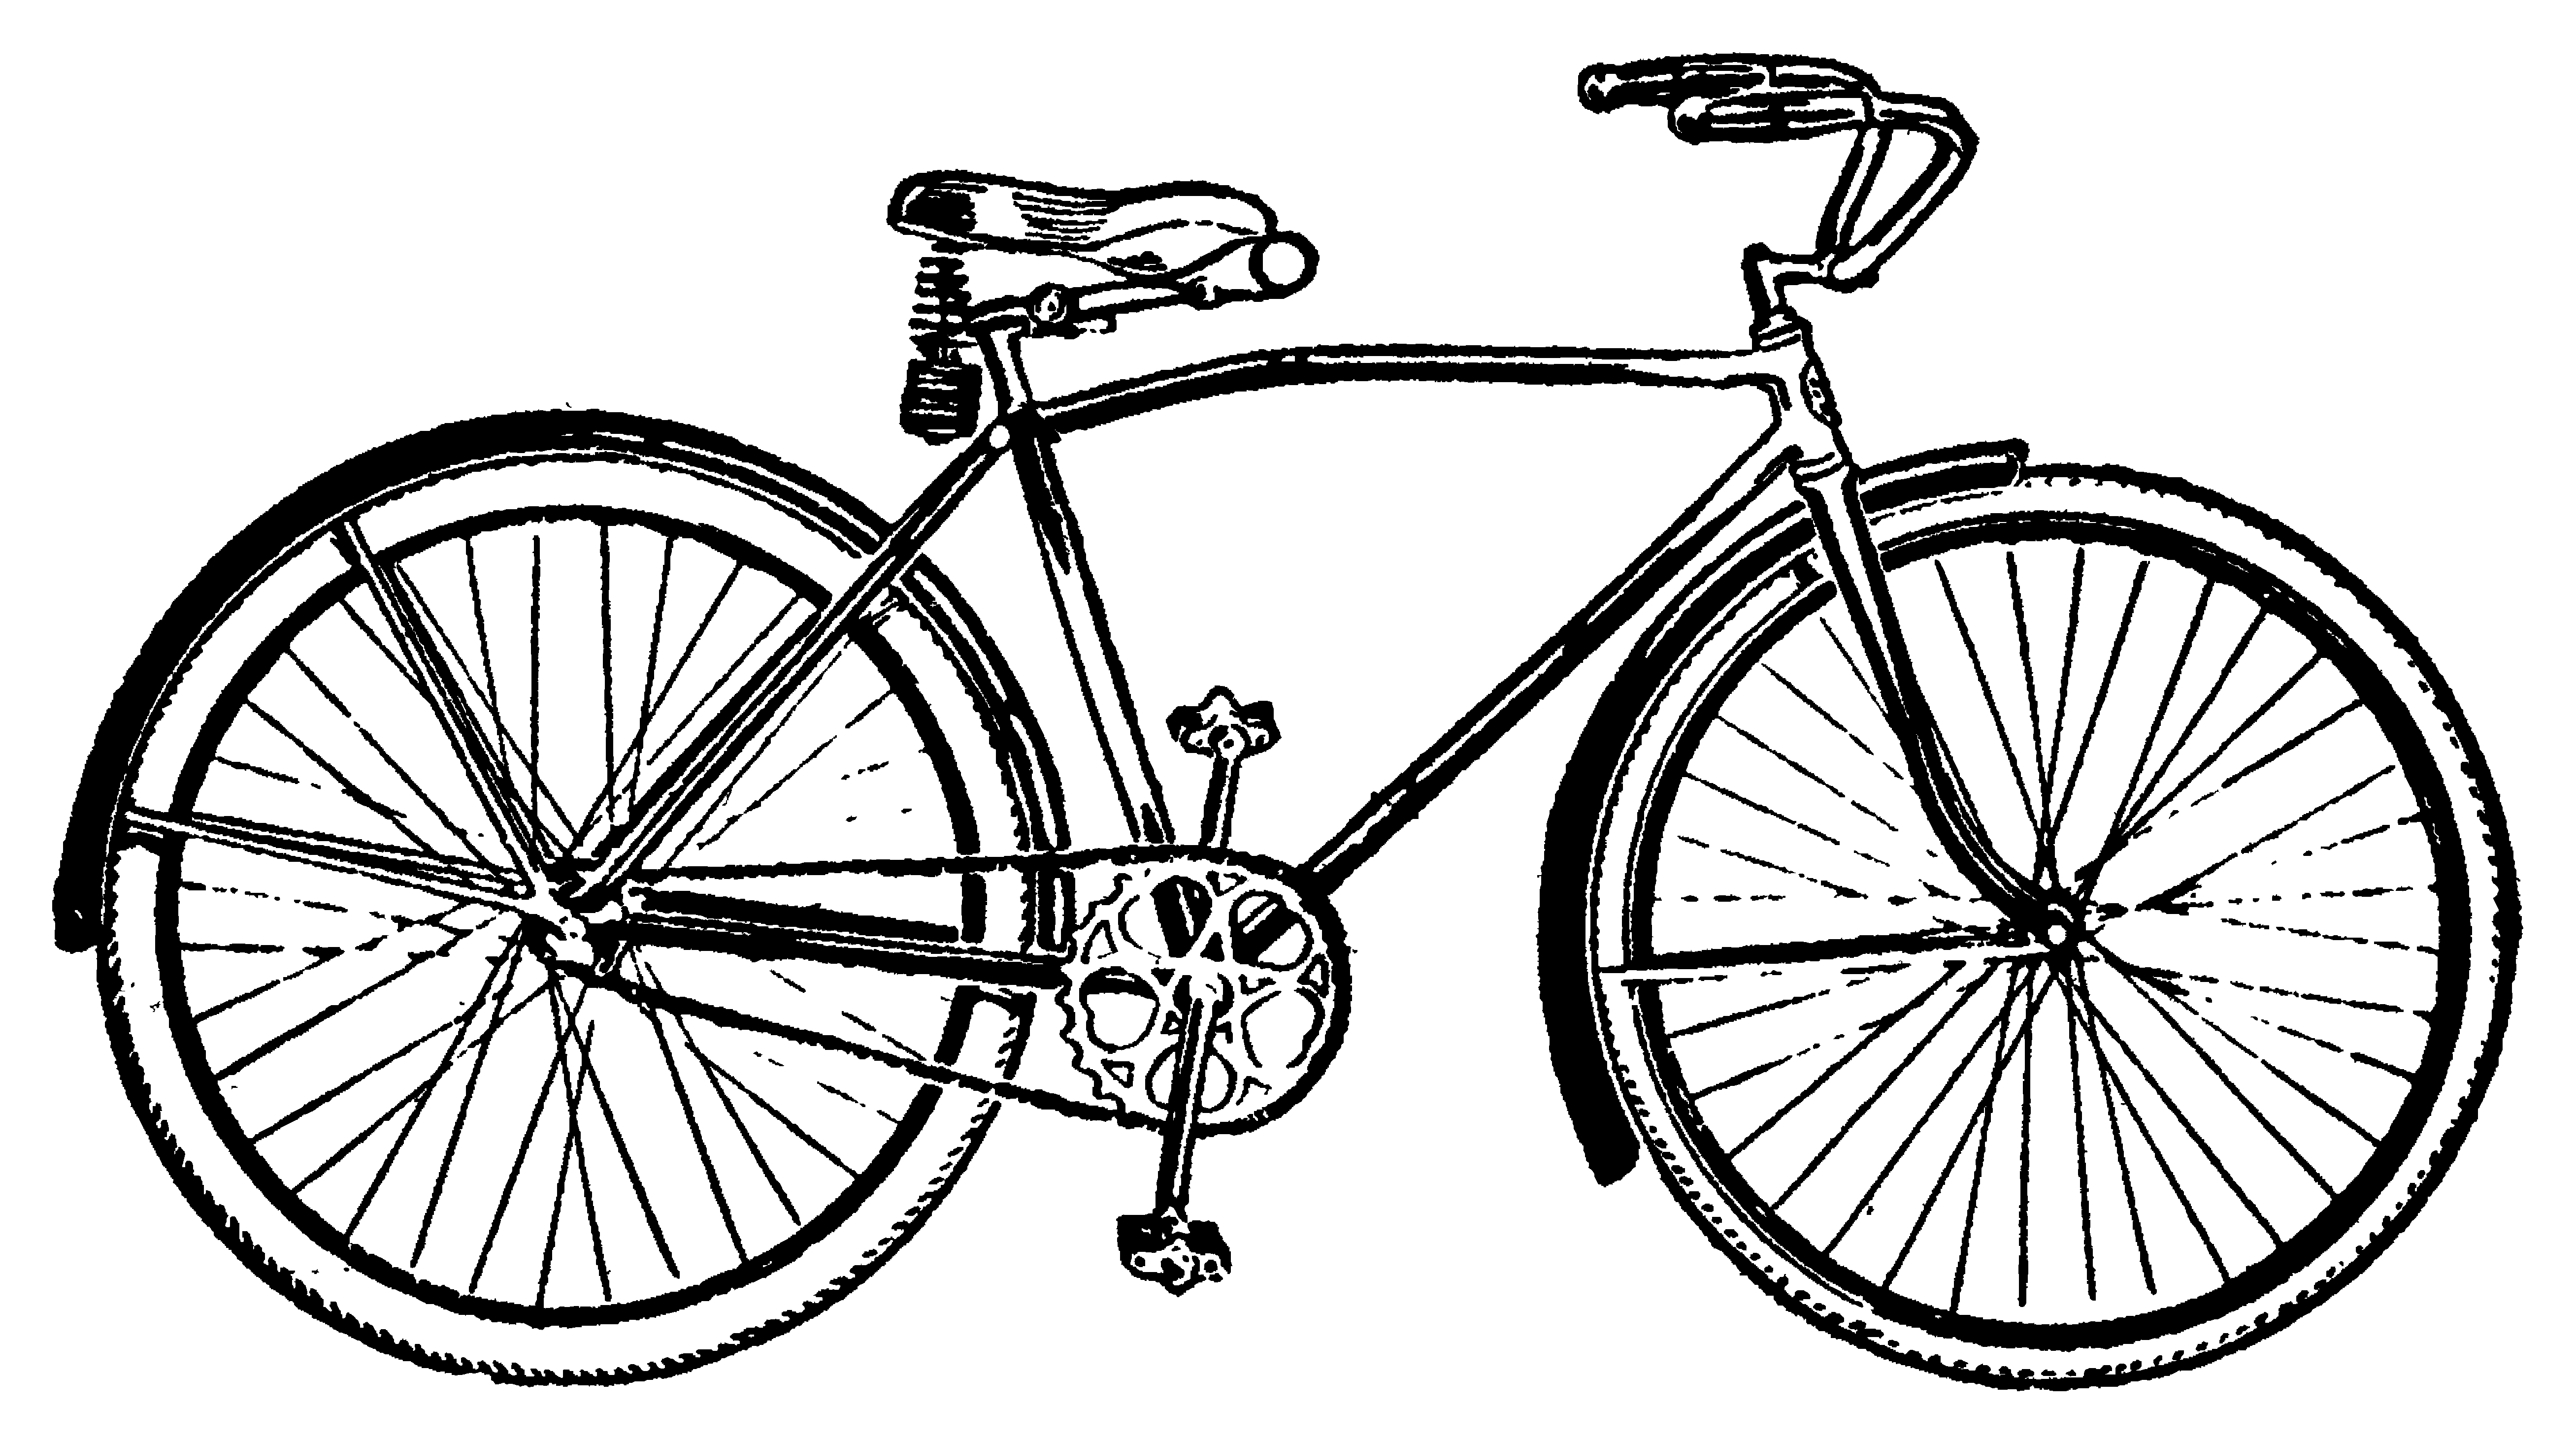 Clipart cycle clip art black and white stock Cycle Clip Art – Clipart Free Download clip art black and white stock